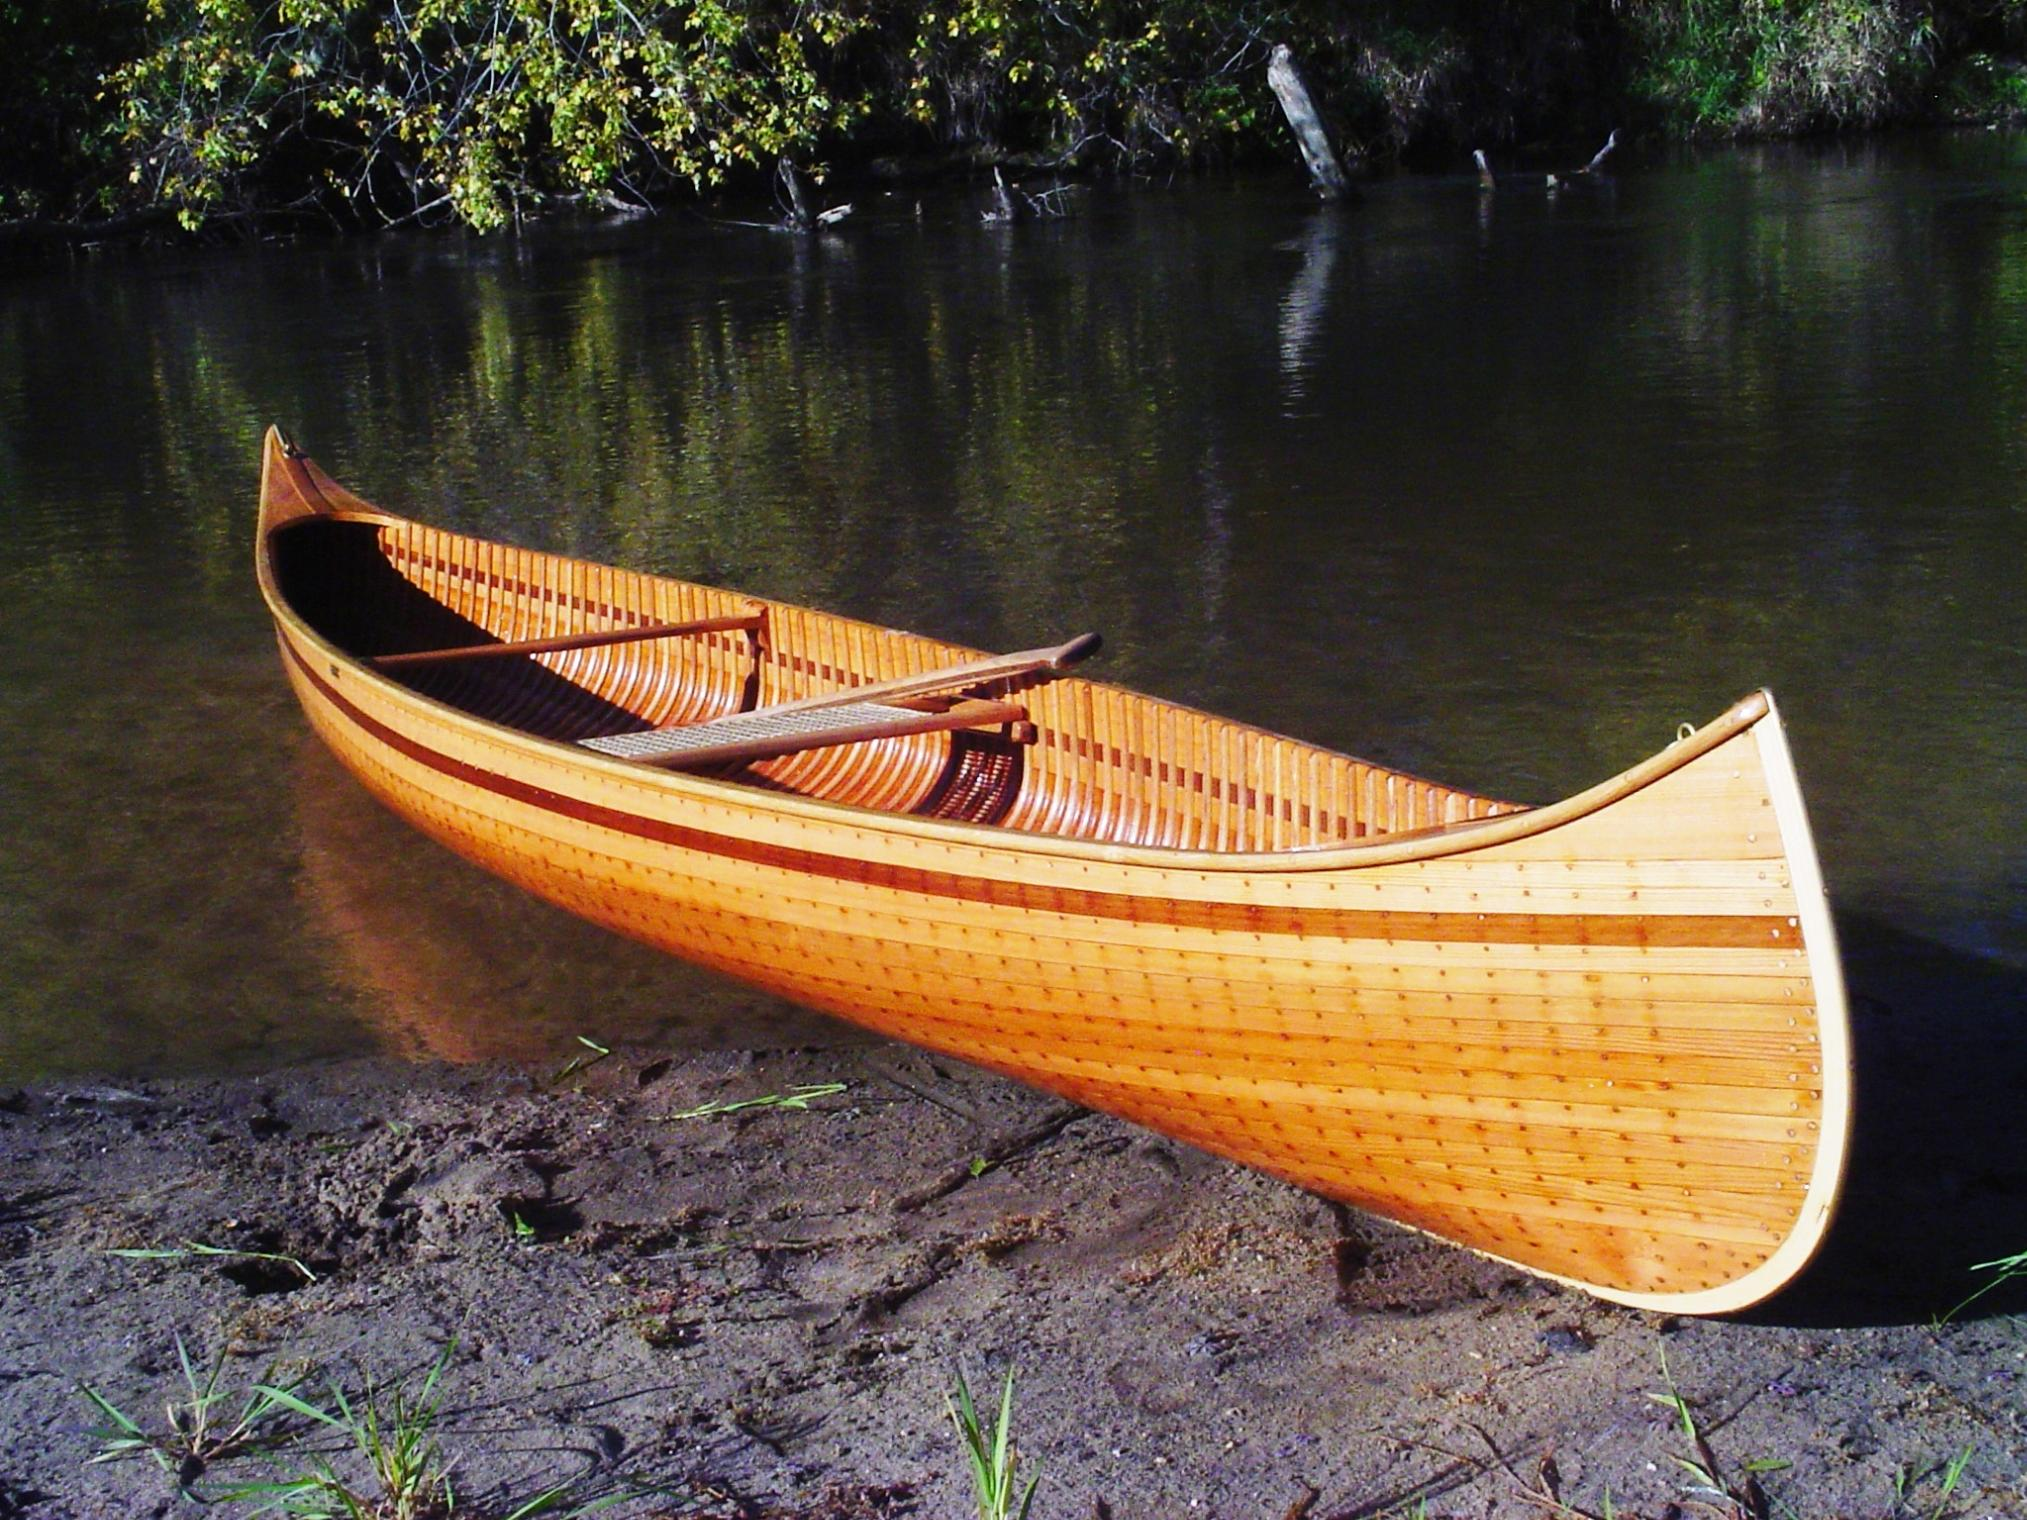 Bwca wood canoe or not boundary waters gear forum for The big canoe